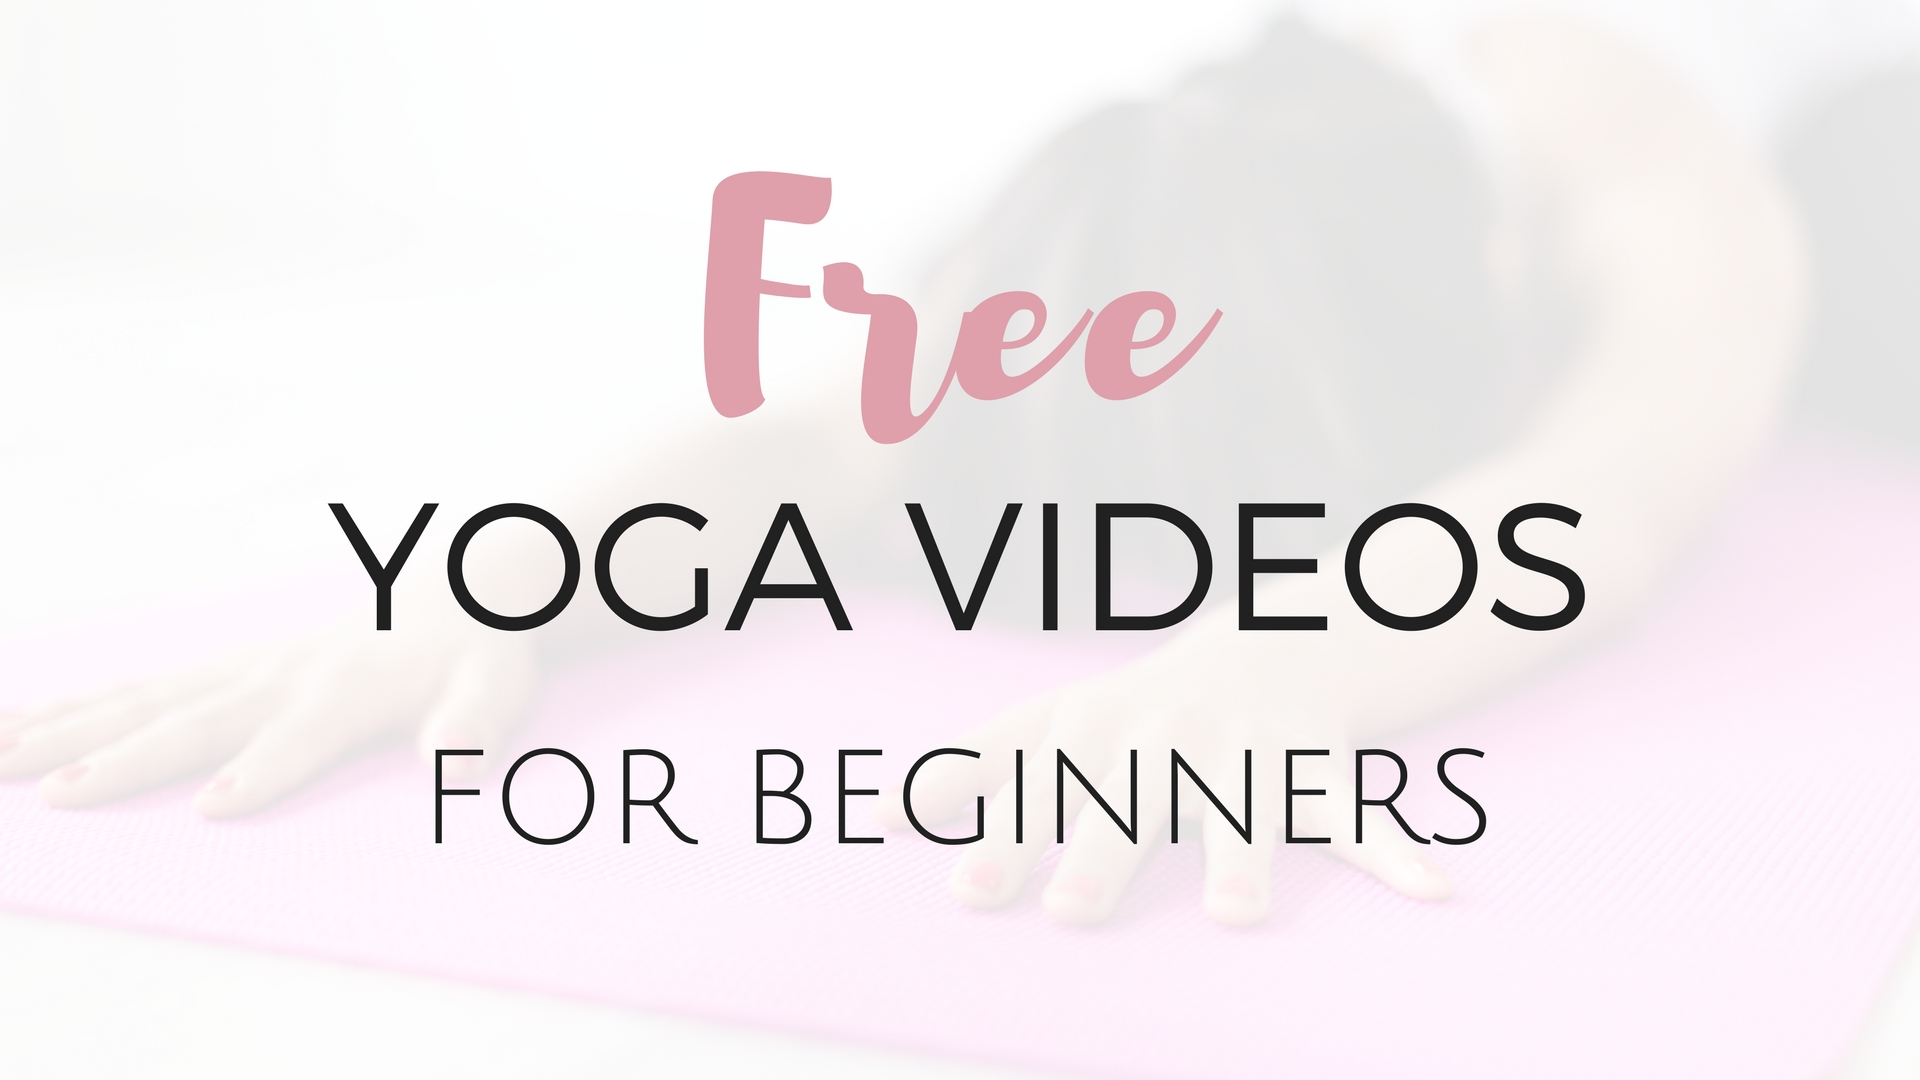 Free Yoga Videos For Beginners - Project Get It Together